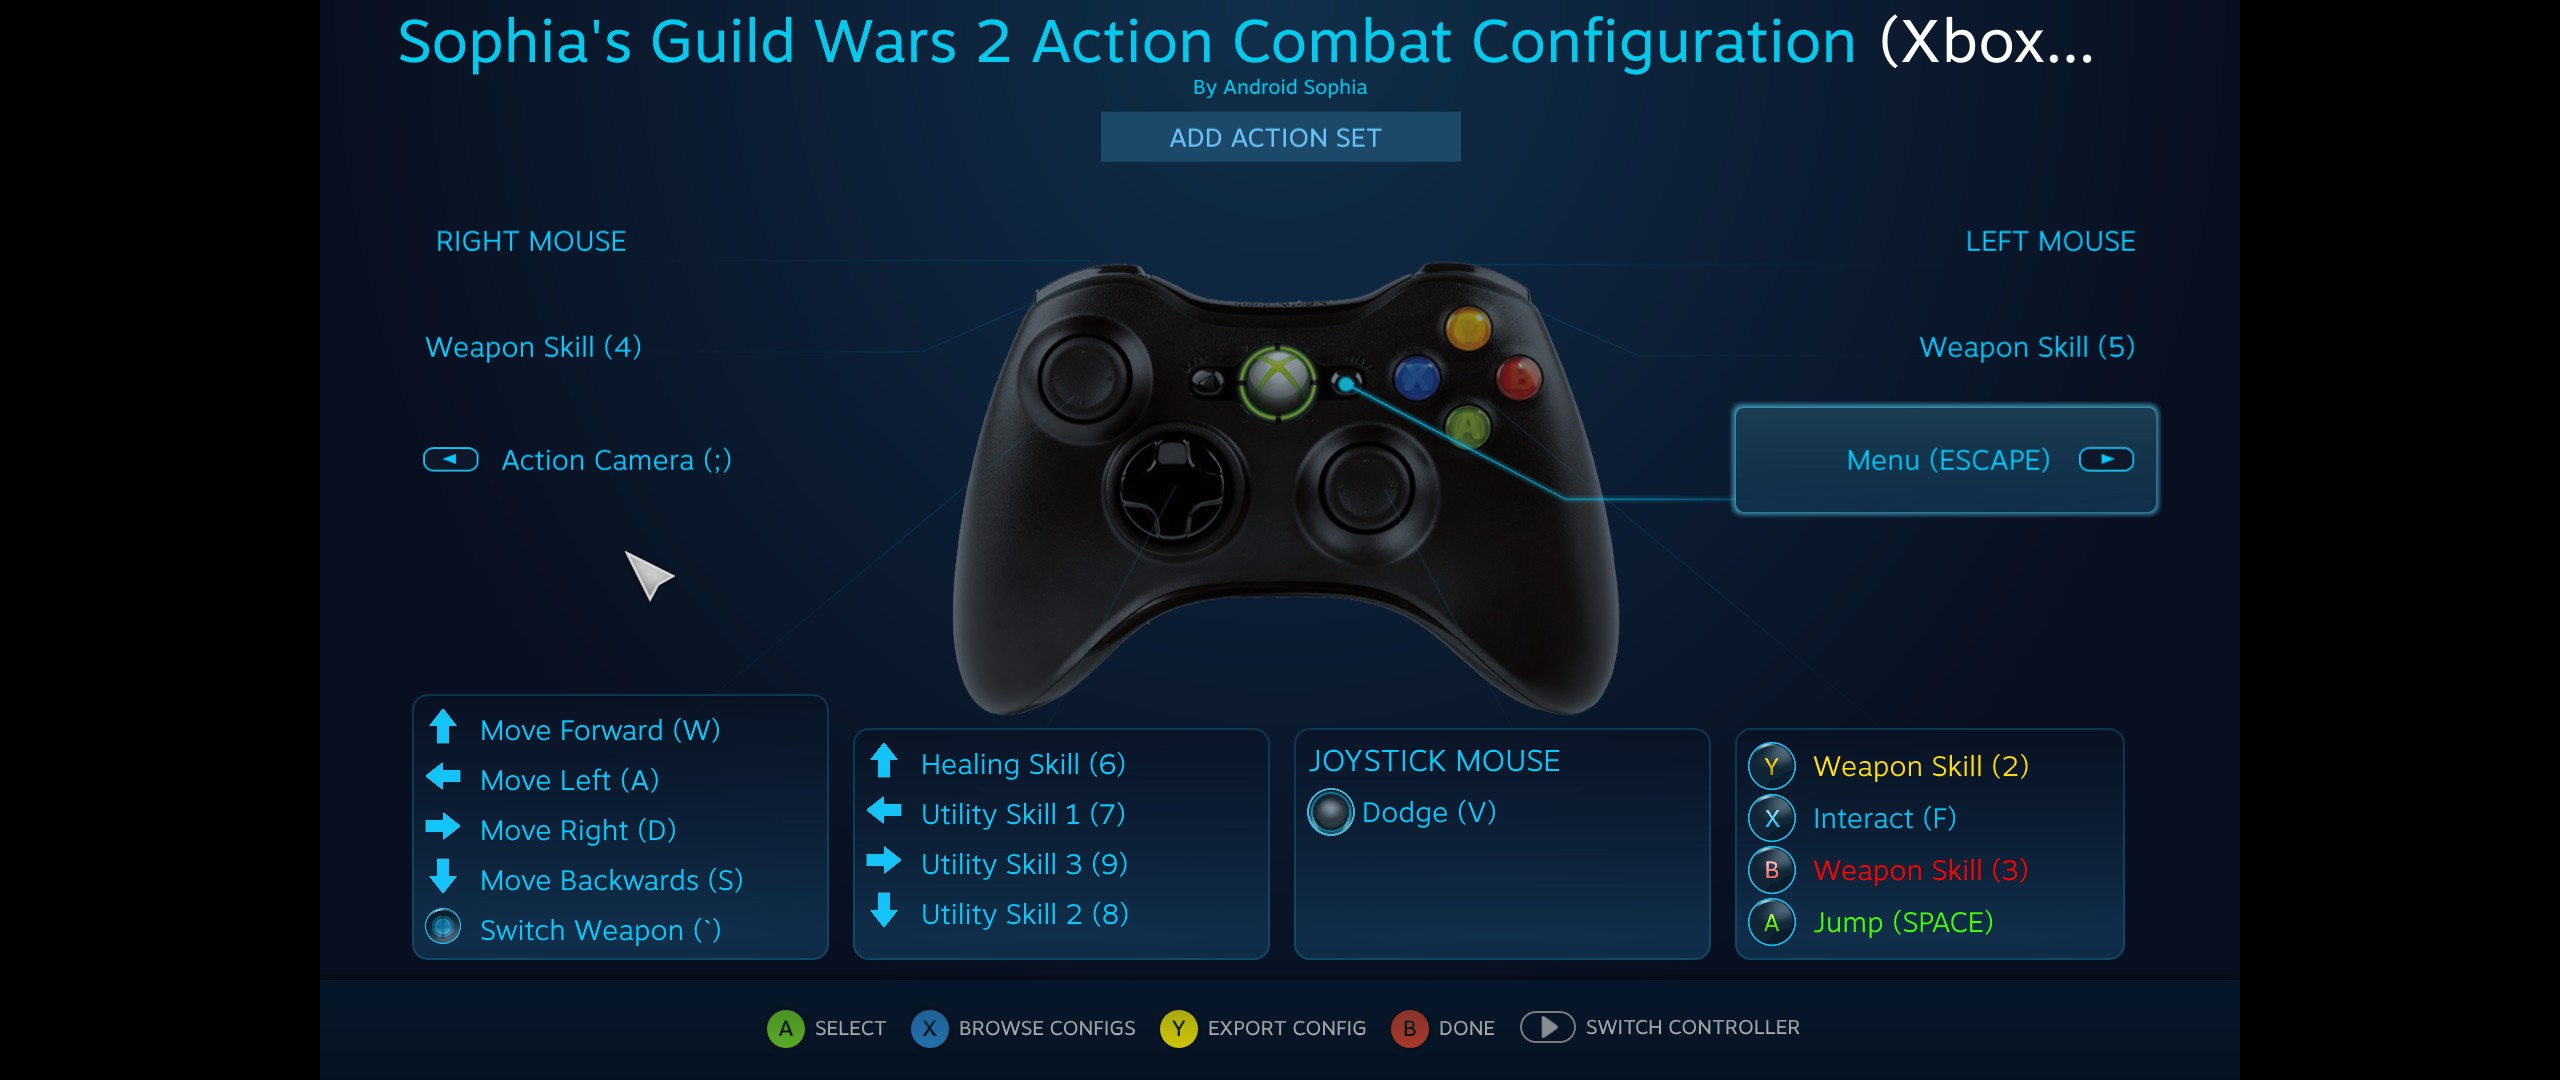 Steam adds controller support for X360, XB1, Xinput, 3rd